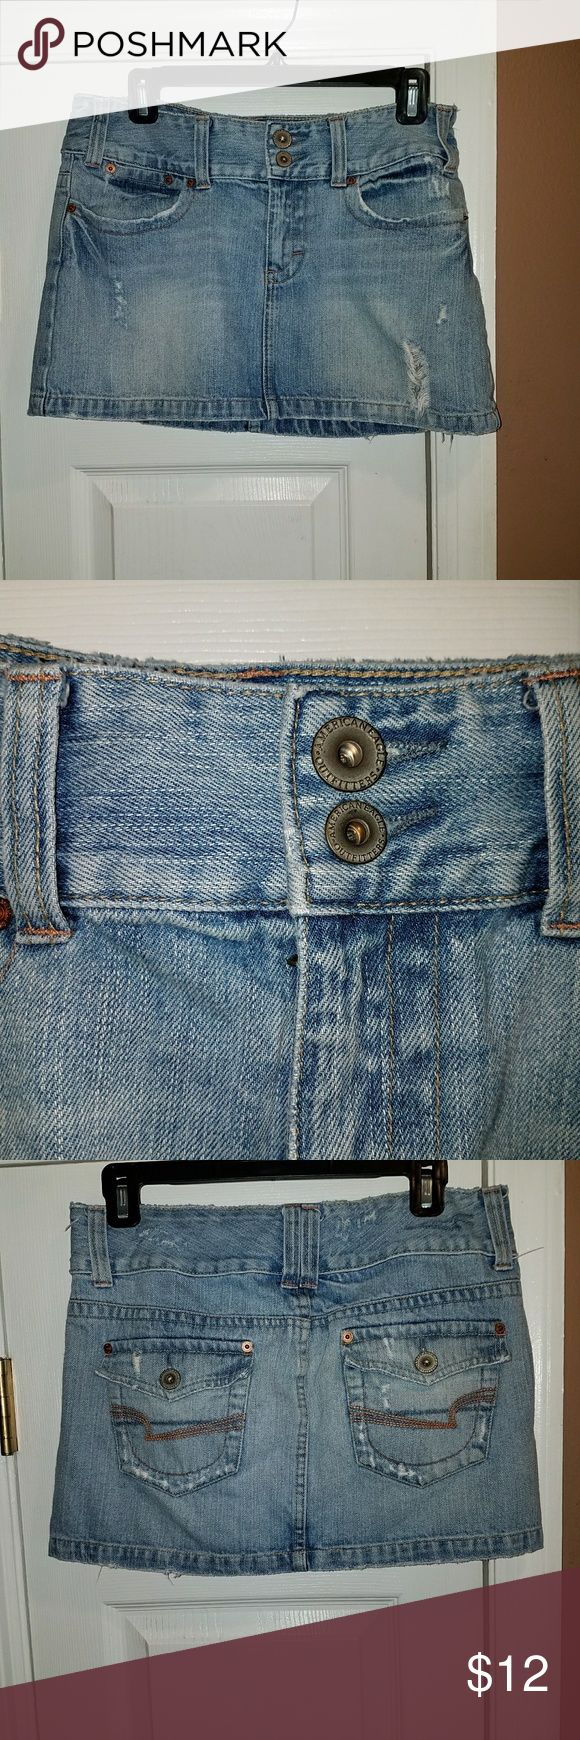 American Eagle Sz 6 DENIM DISTRESSED JEAN Skirt Good worn condition. American Eagle Outfitters Skirts Mini